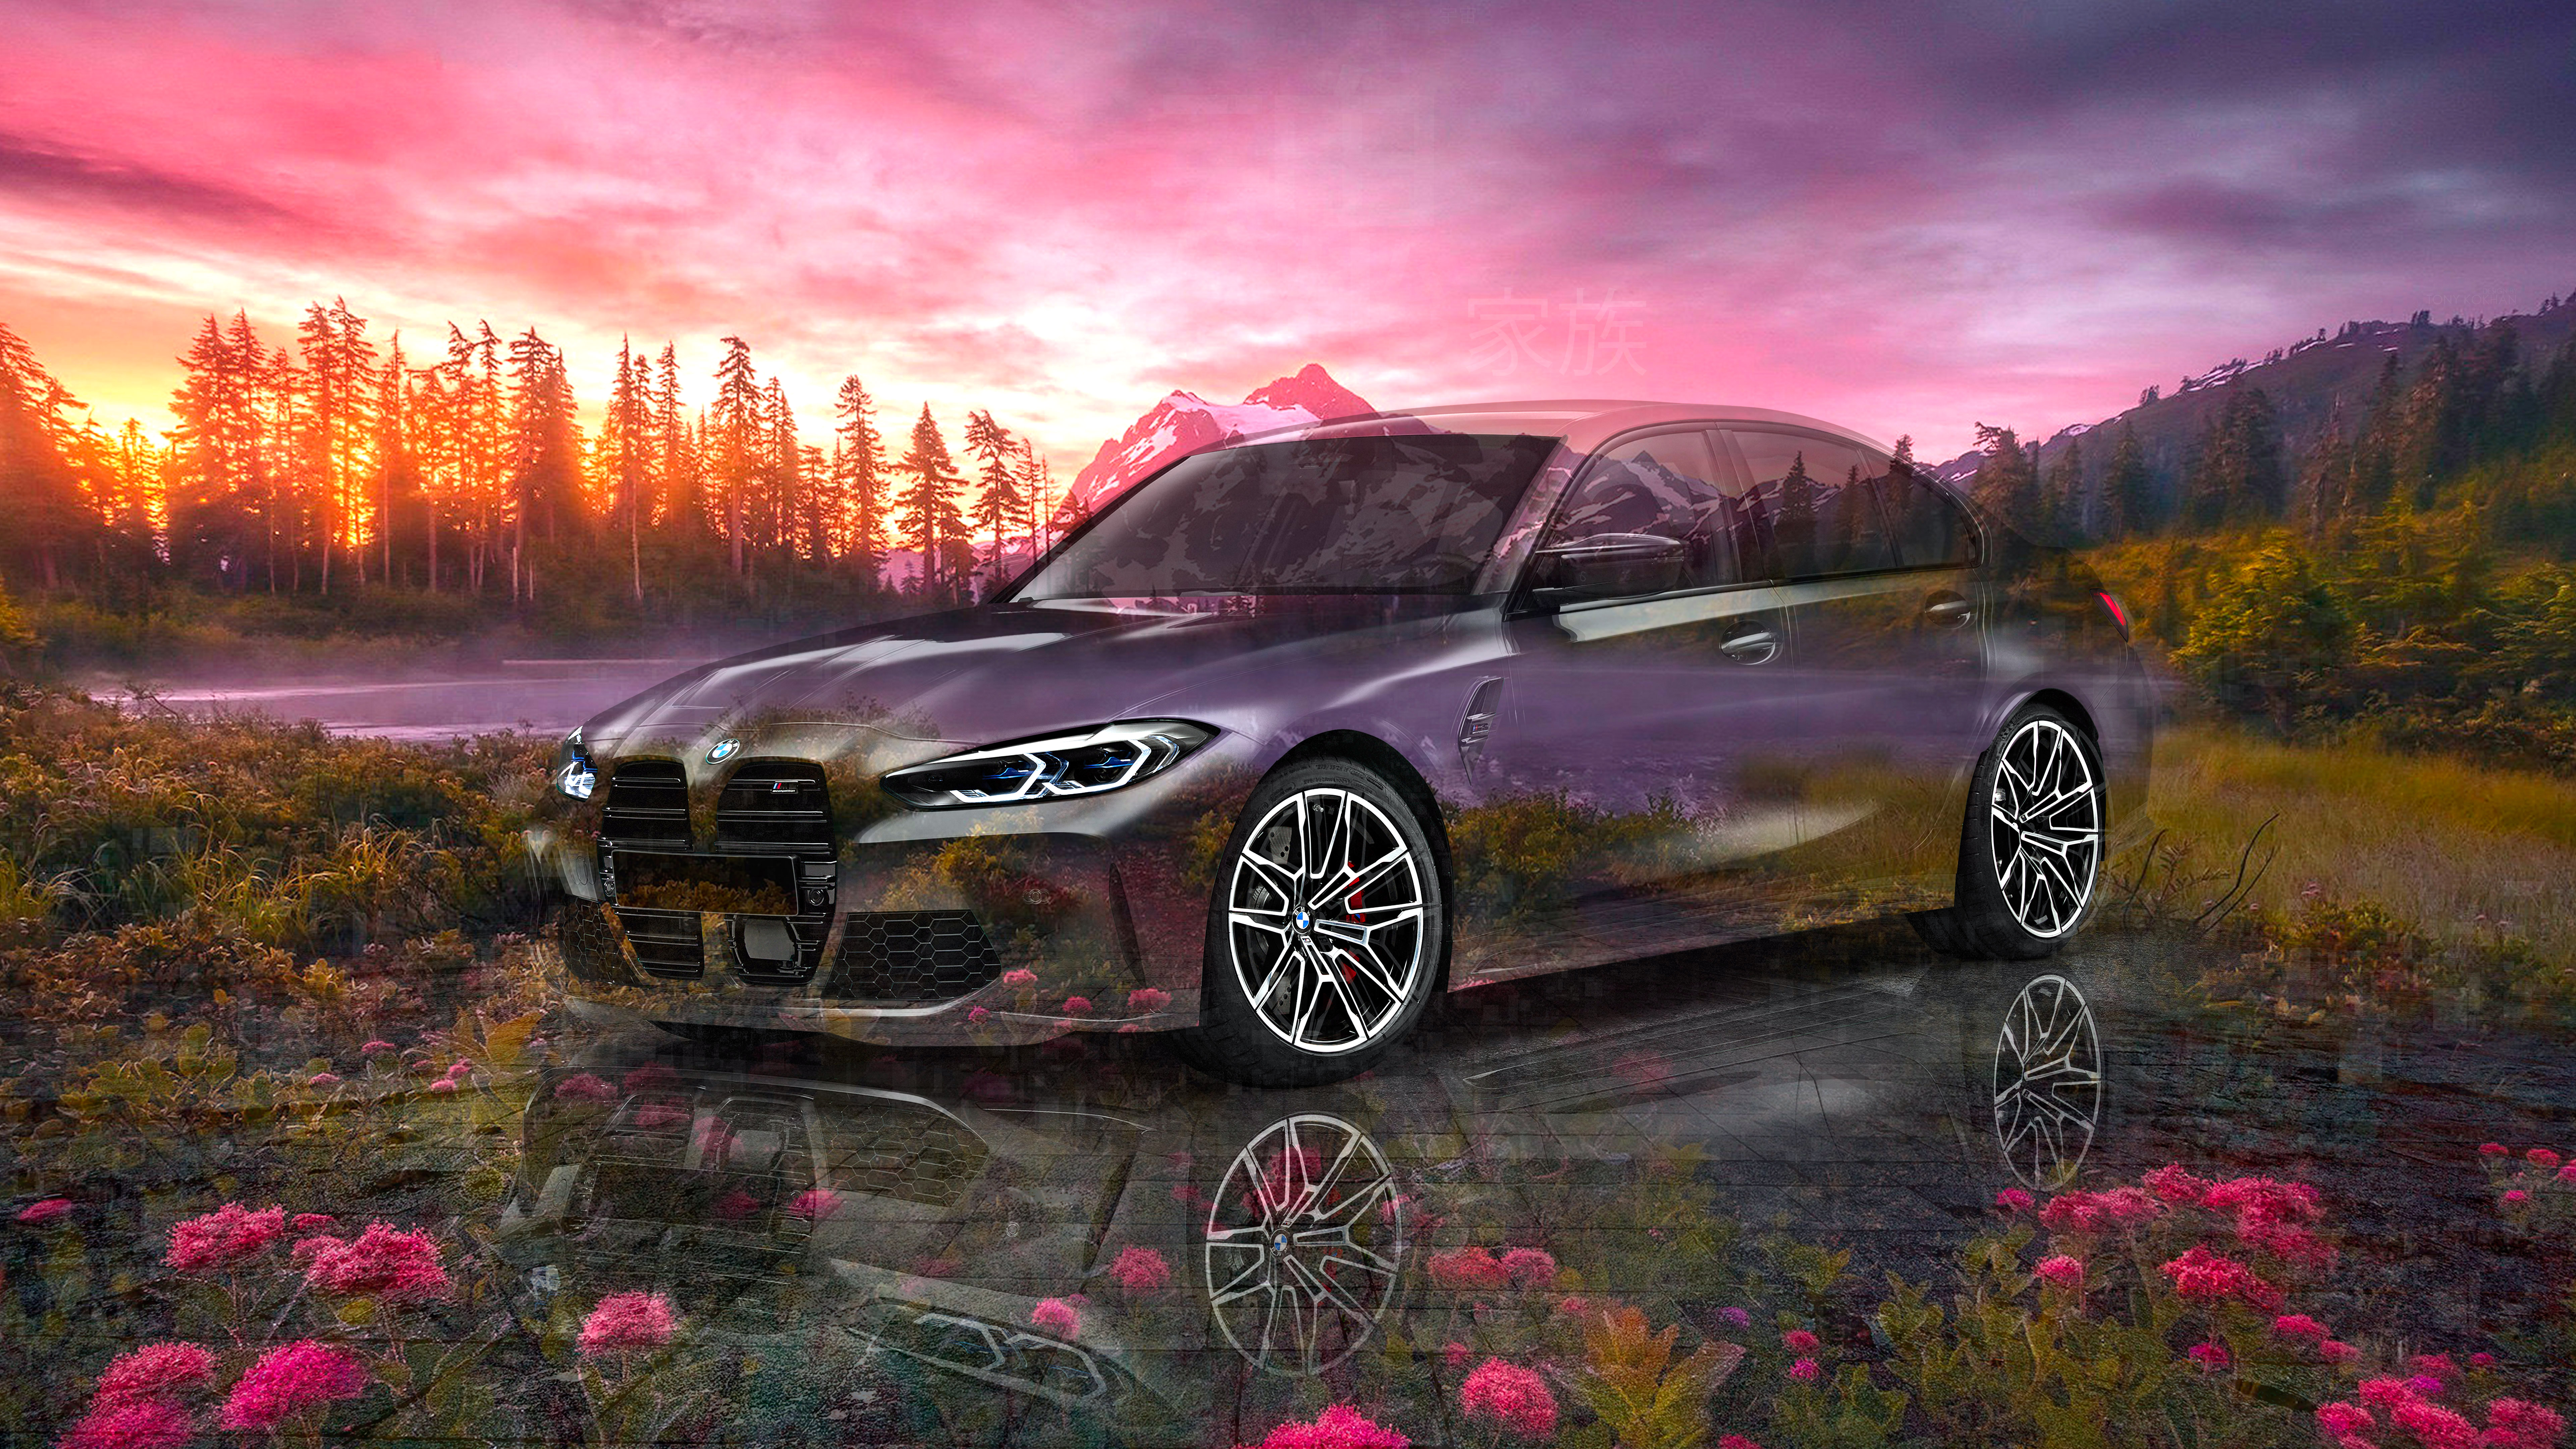 BMW-M3-Competition-Super-Crystal-Family-Soul-Nature-Sunset-Flowers-Tactile-Hologram-Art-Car-2020-Multicolors-8K-Wallpapers-design-by-Tony-Kokhan-www.el-tony.com-image